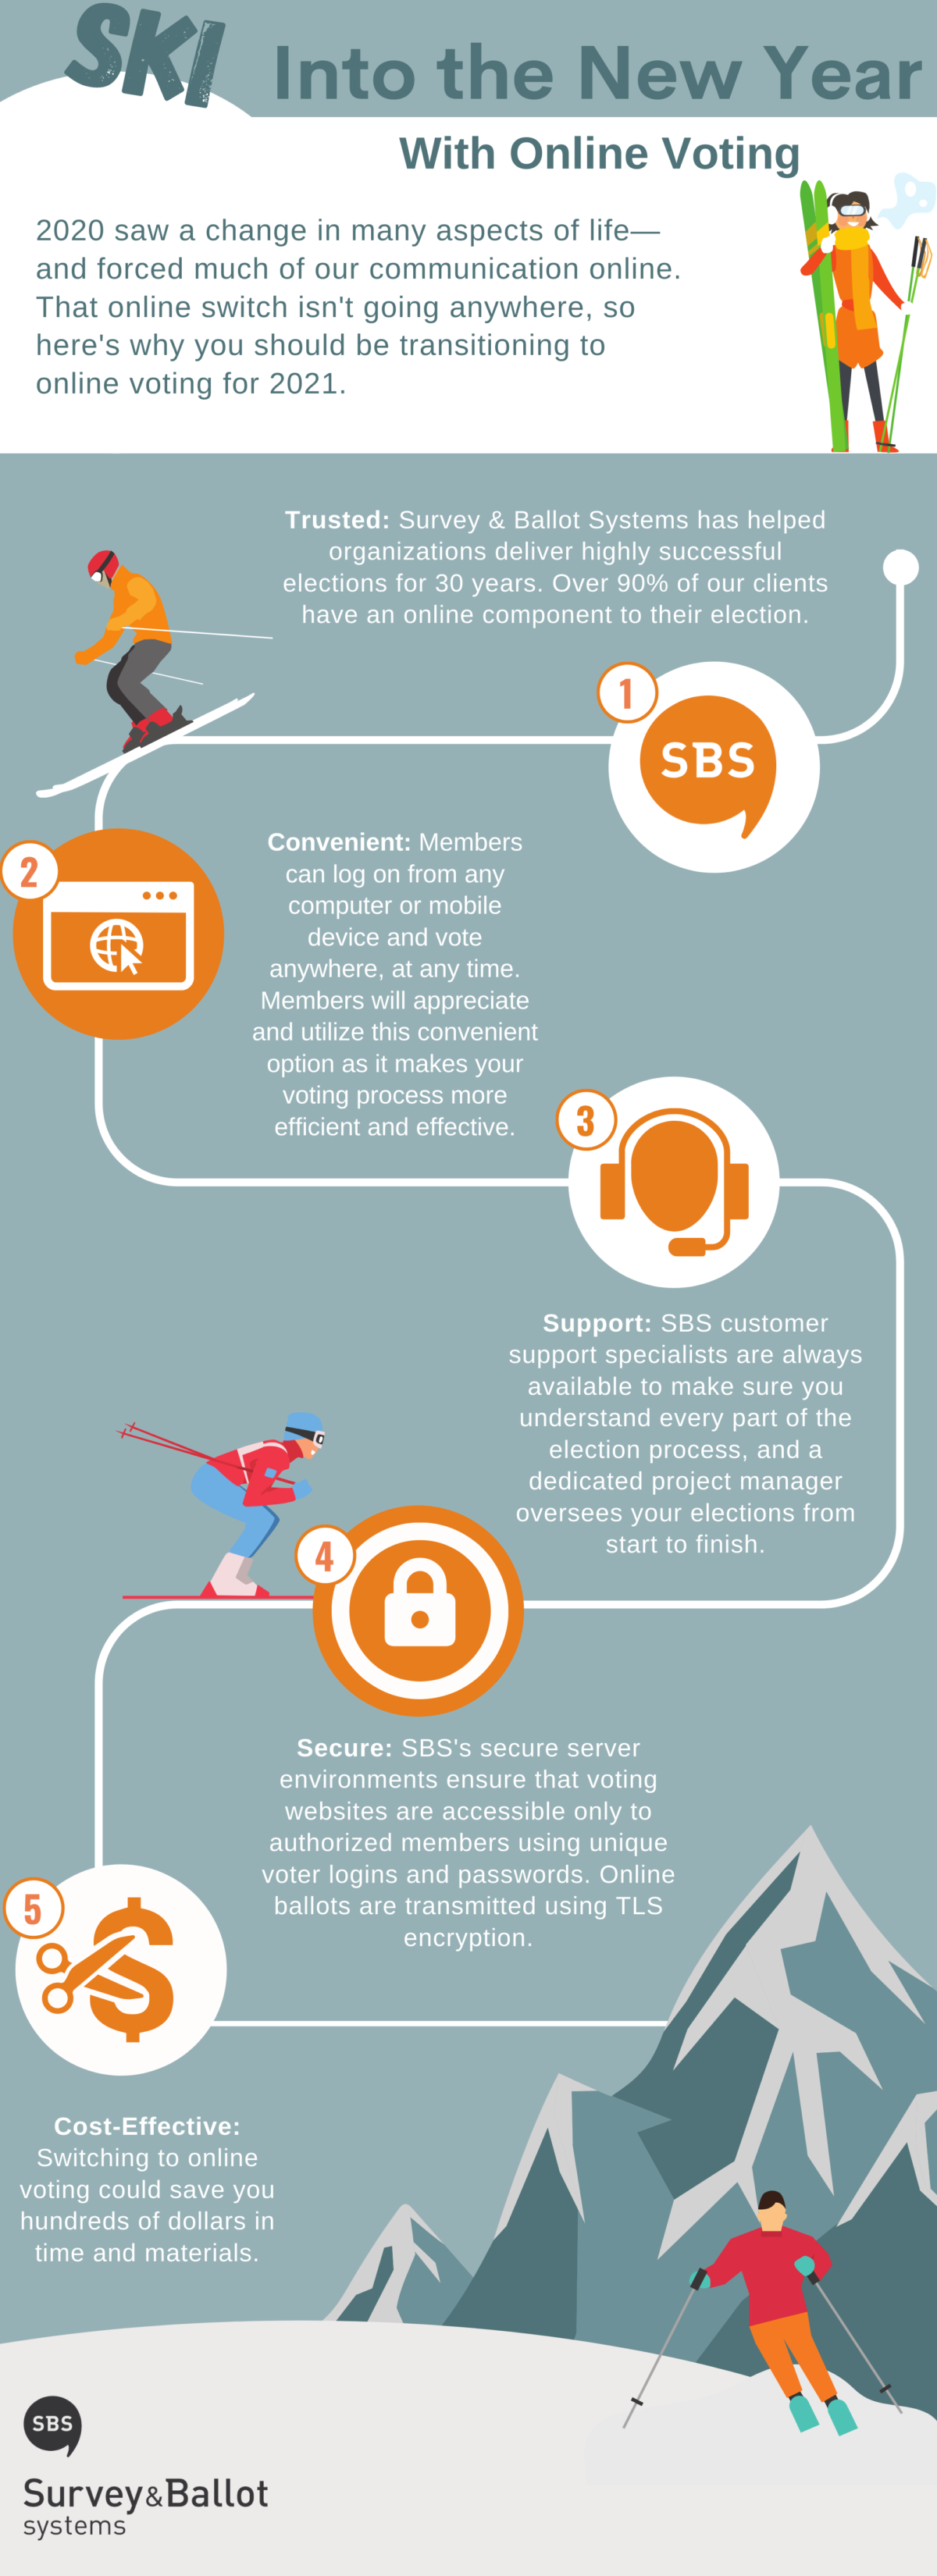 An infographic detailing why you should consider using SBS for online voting in 2021.